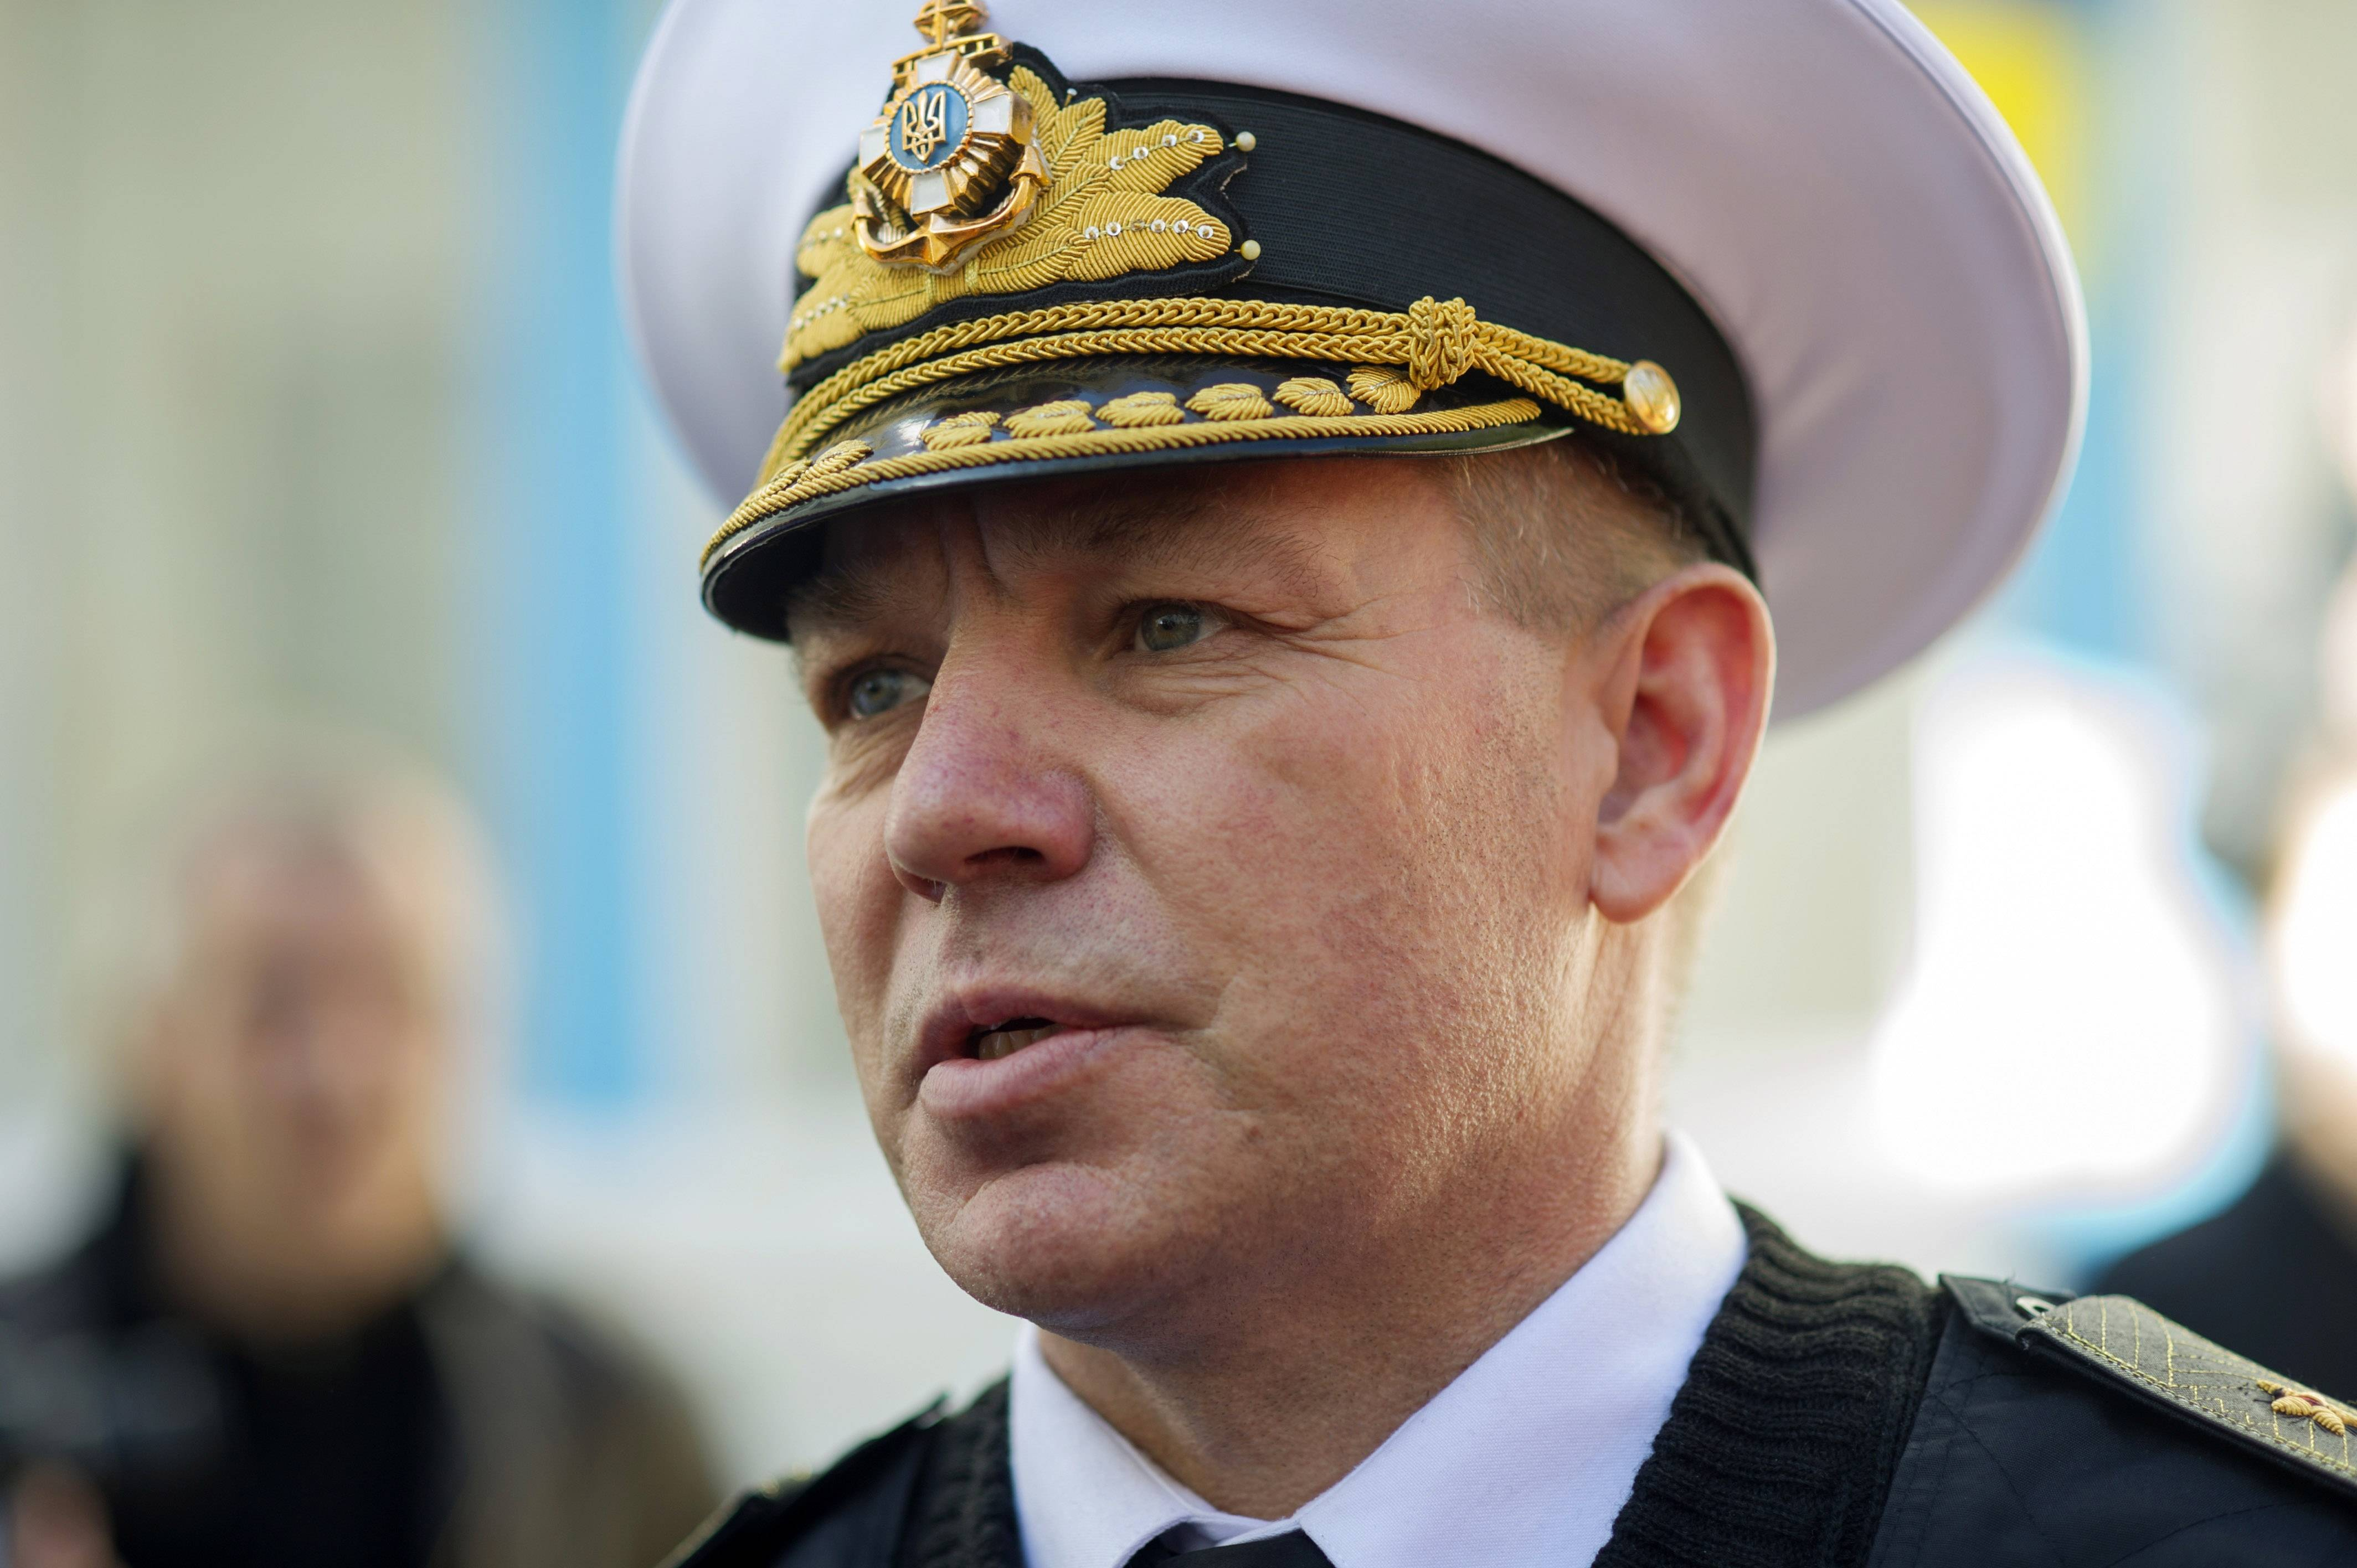 Commander of the Naval forces of Ukraine Rear Admiral Sergei Gaiduk was detained for questioning, the Russian state ITAR-Tass news agency reported, citing the Crimean prosecutors' office.